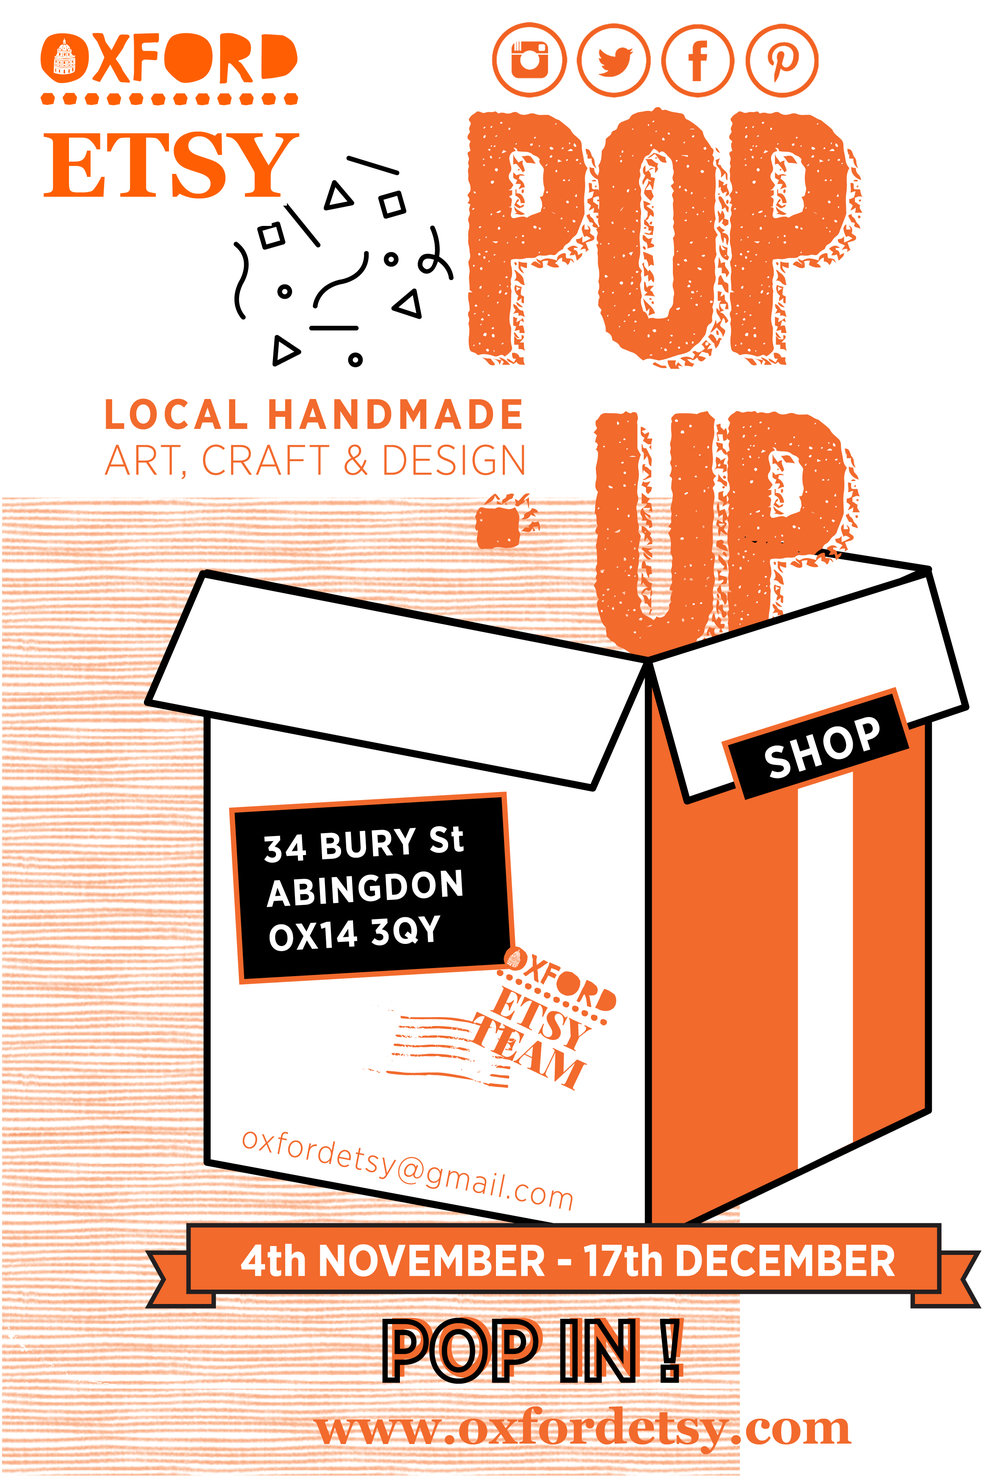 POP UP SHOP flyer2(1) edit.jpg